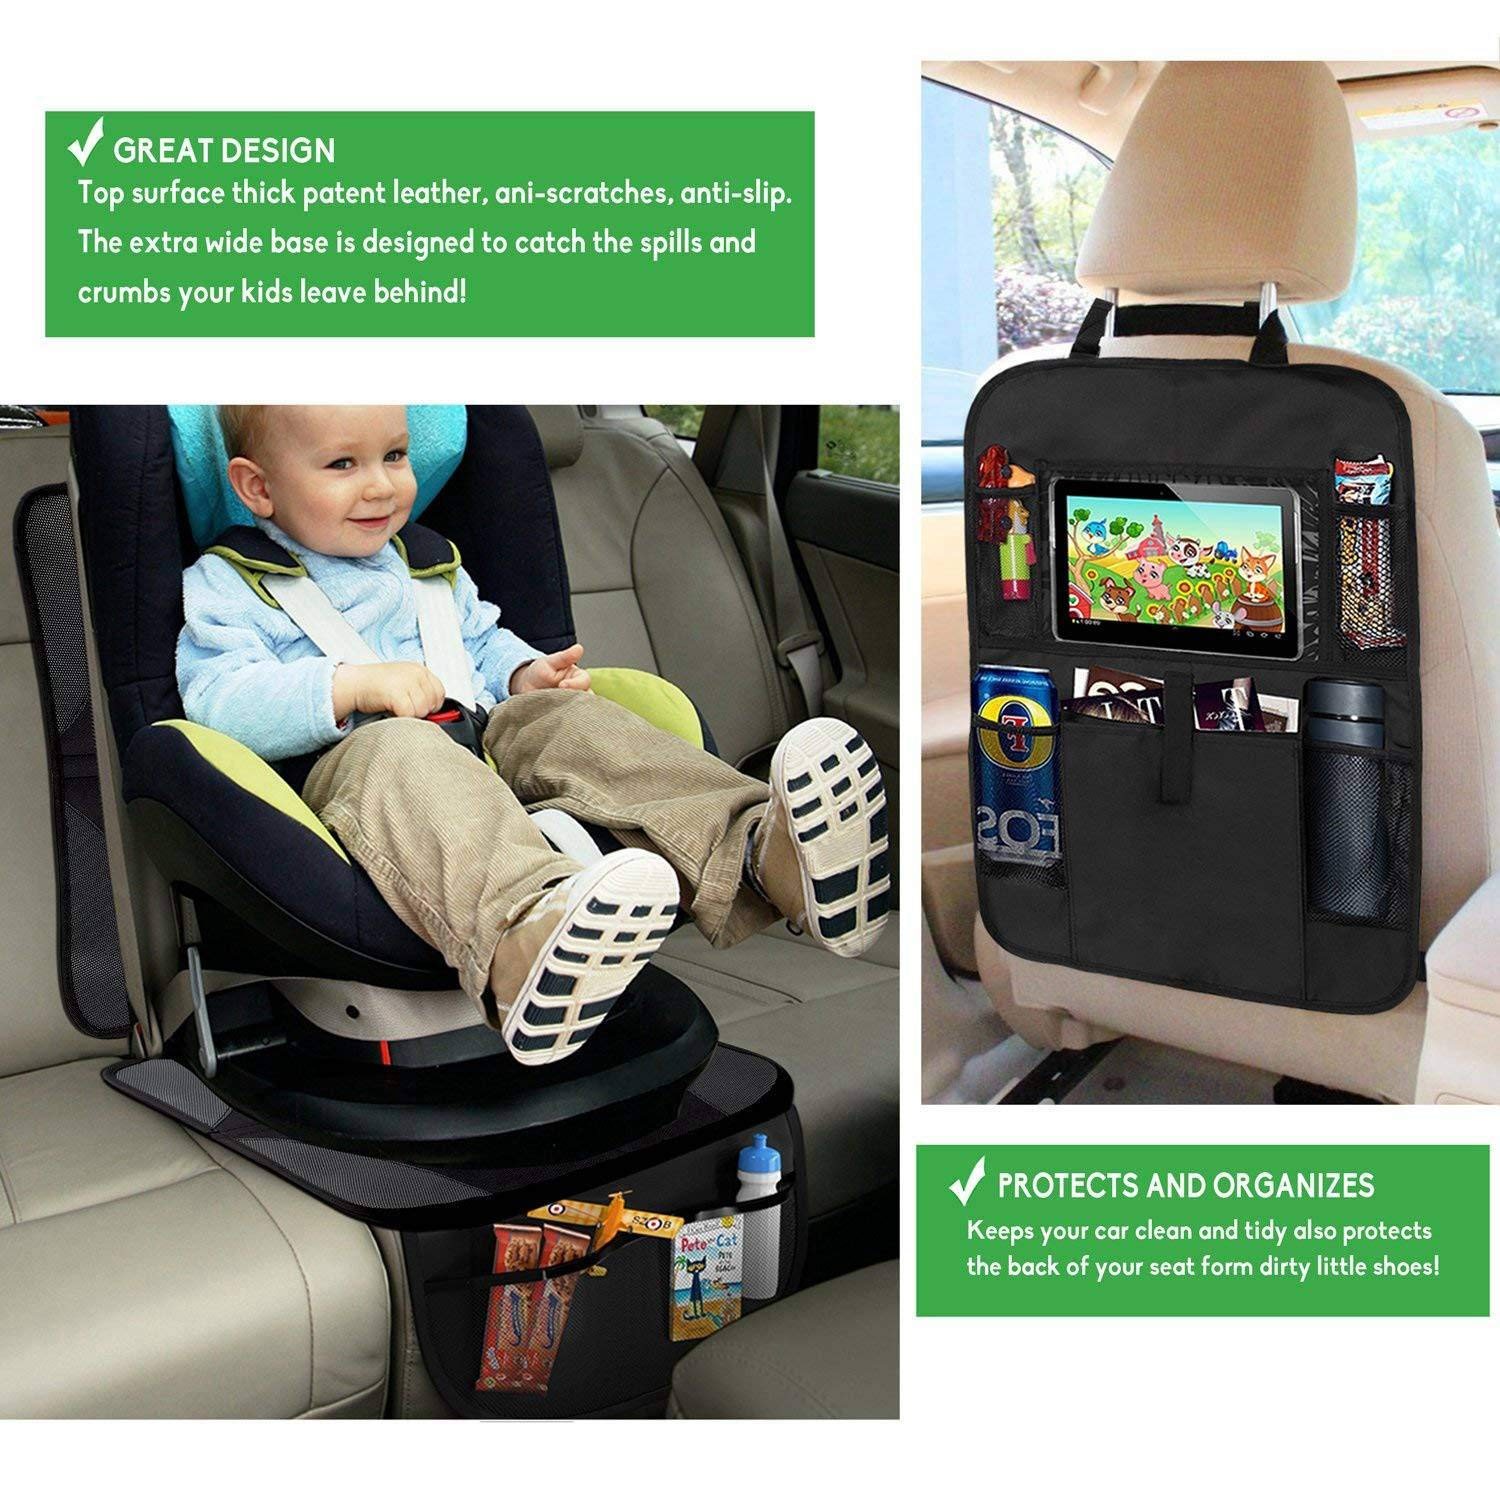 SODIAL Car Seat Protector Waterproof And Dirt Resistant Dog Mat Kick Mats Auto Backseat Protector Car Seat Cover For Baby /& Infant Seat